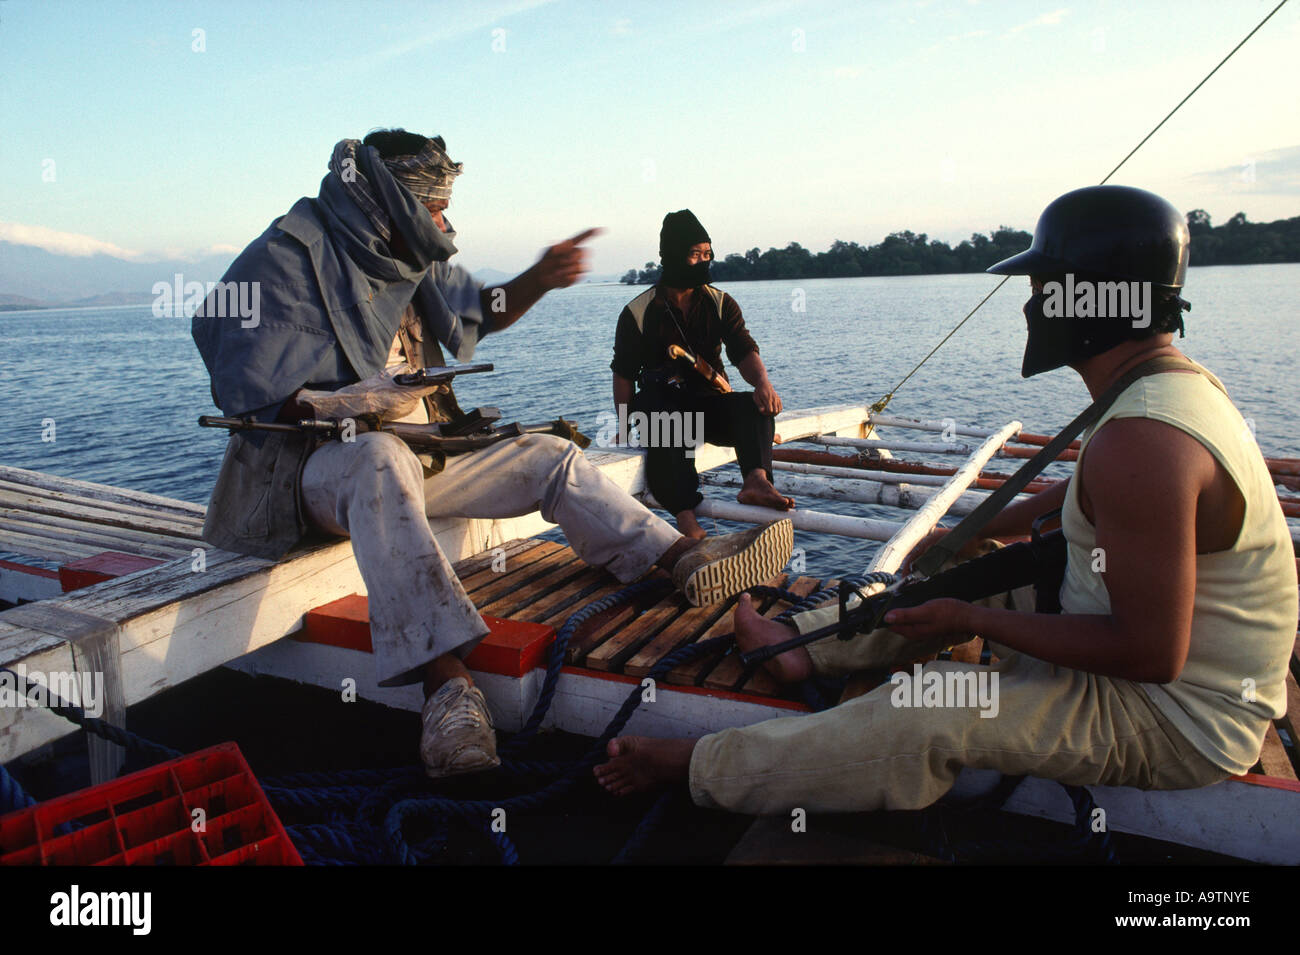 Pirates on board their 22 meter outrigger boat - Stock Image